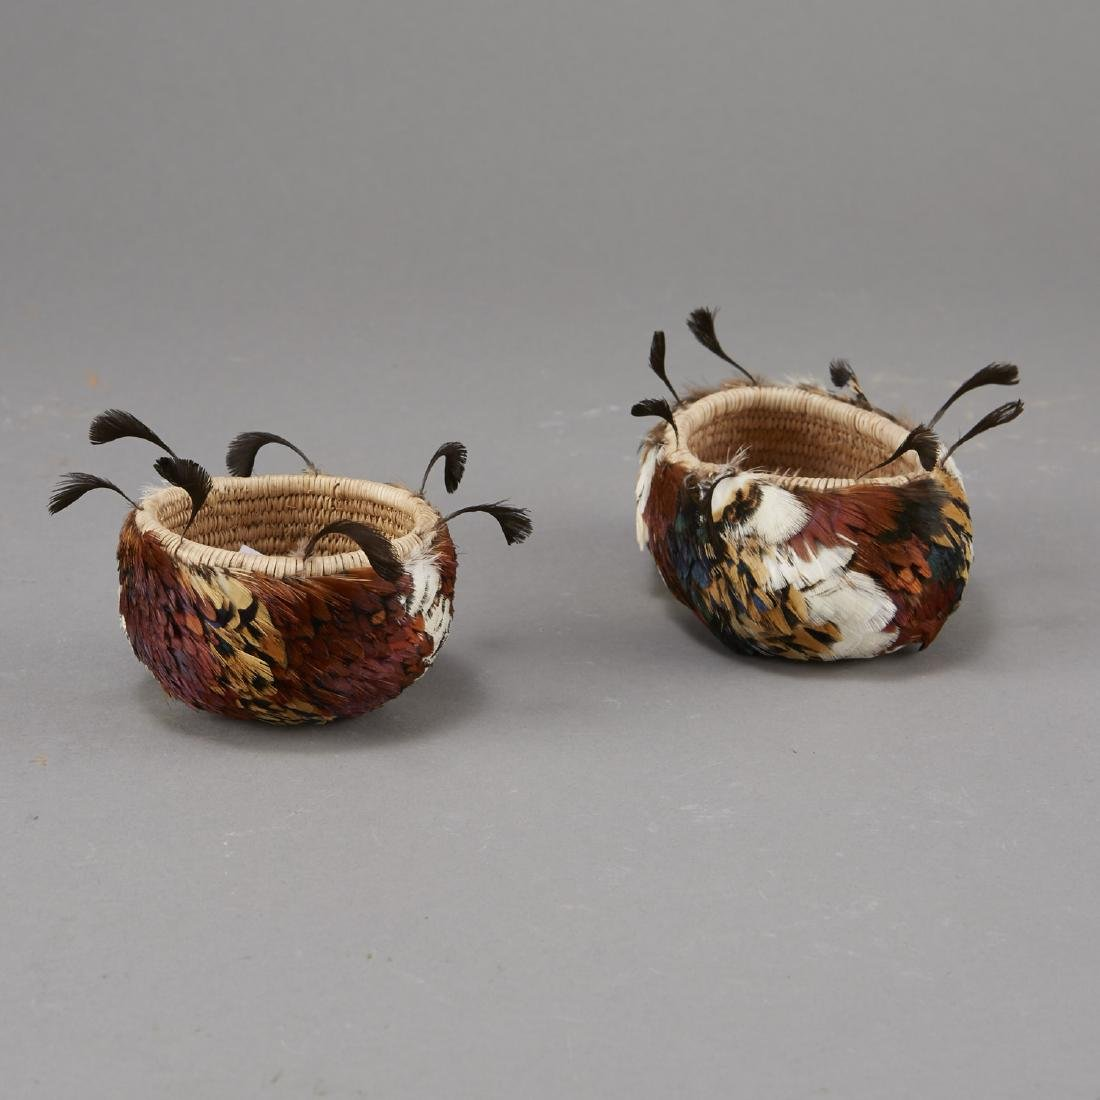 Group of 2 Feathered Pomo Baskets